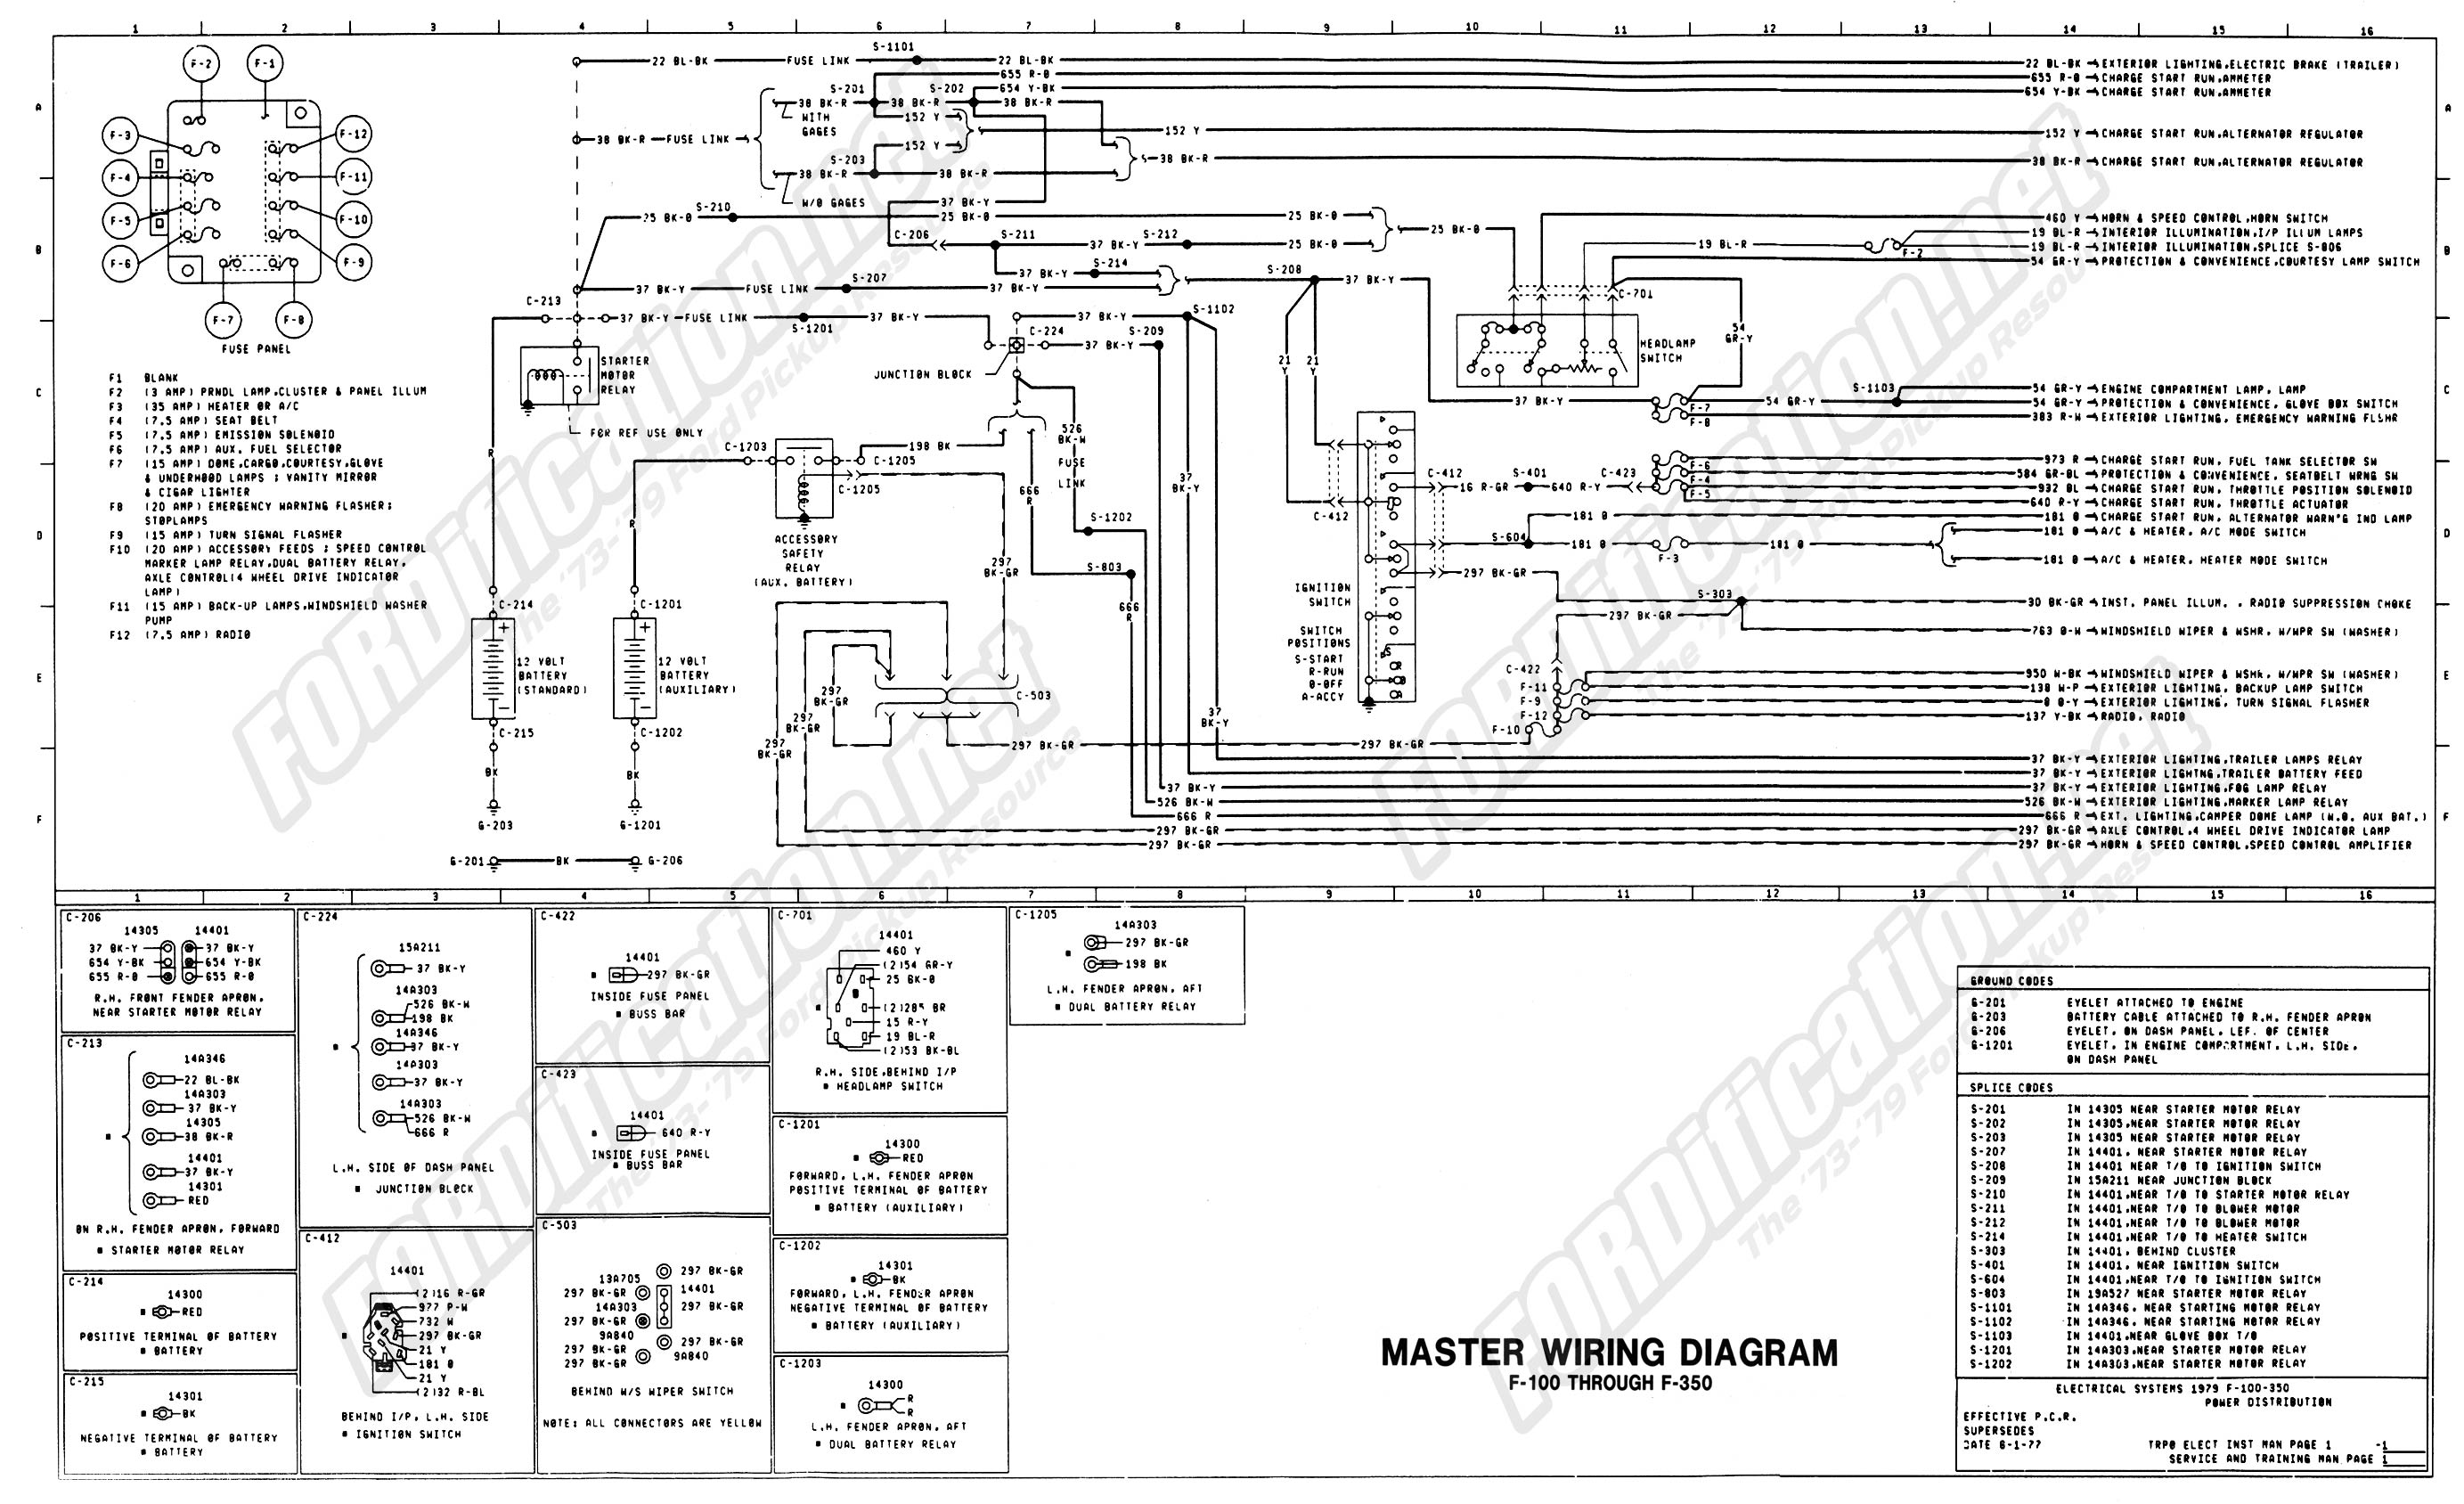 c3e 1977 ford f250 fuse box diagram | wiring resources  wiring resources